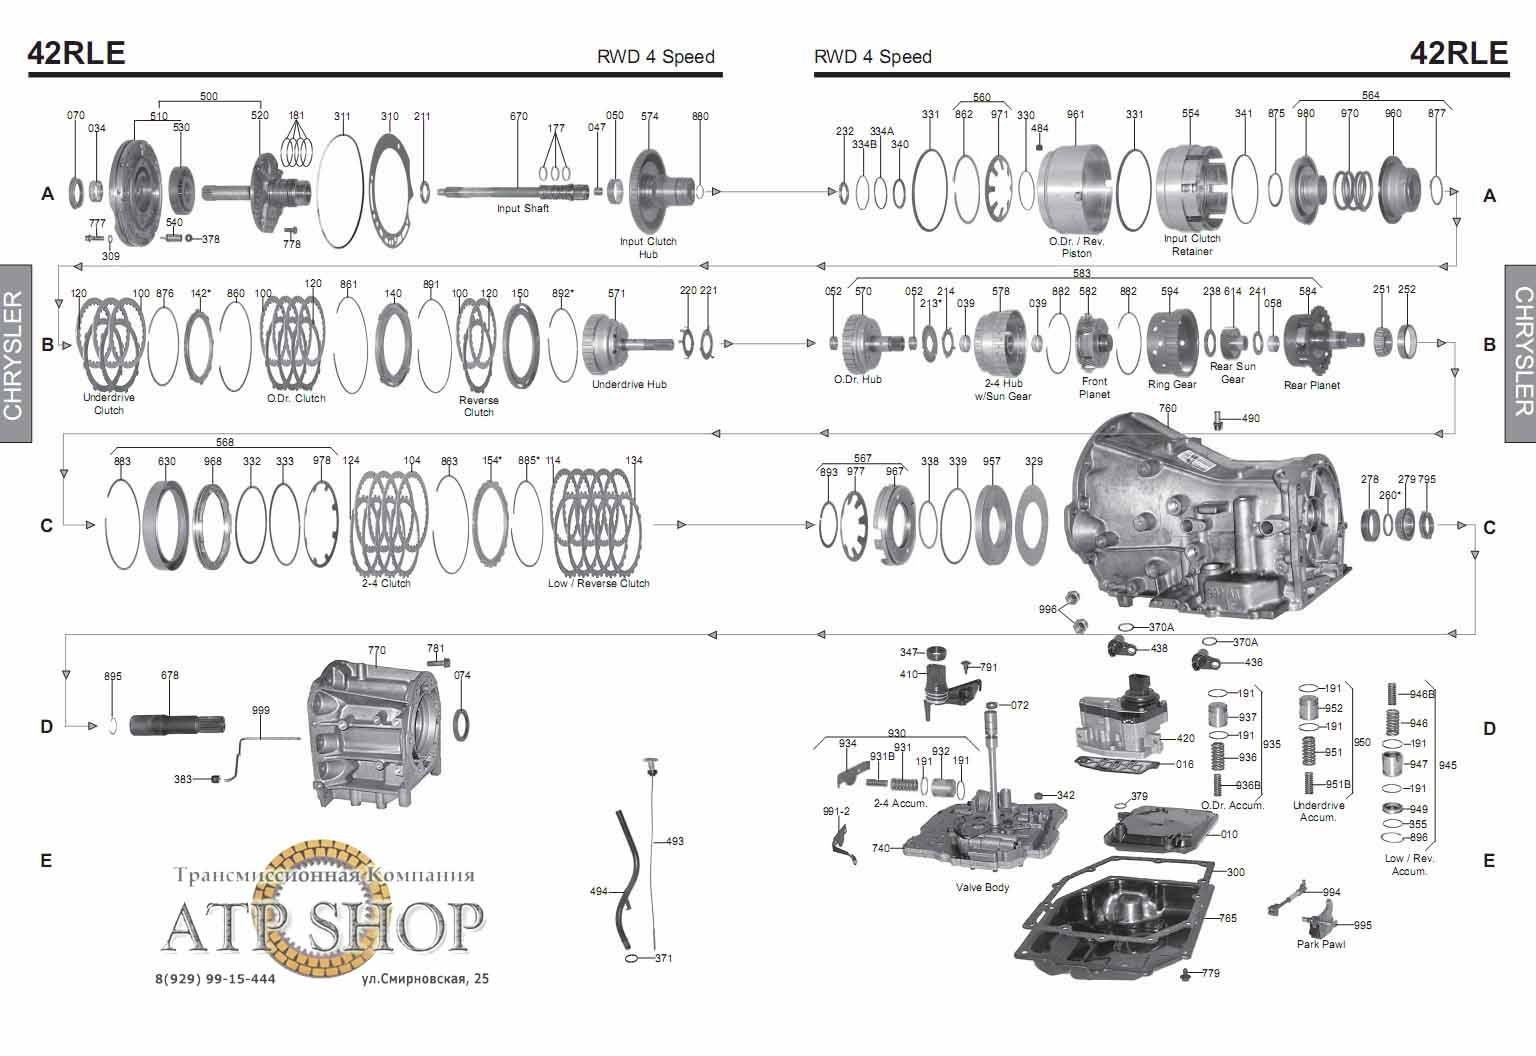 small resolution of jeep 42rle transmission diagrams wiring diagram expert 42rle transmission wiring diagram 42rle transmission diagram